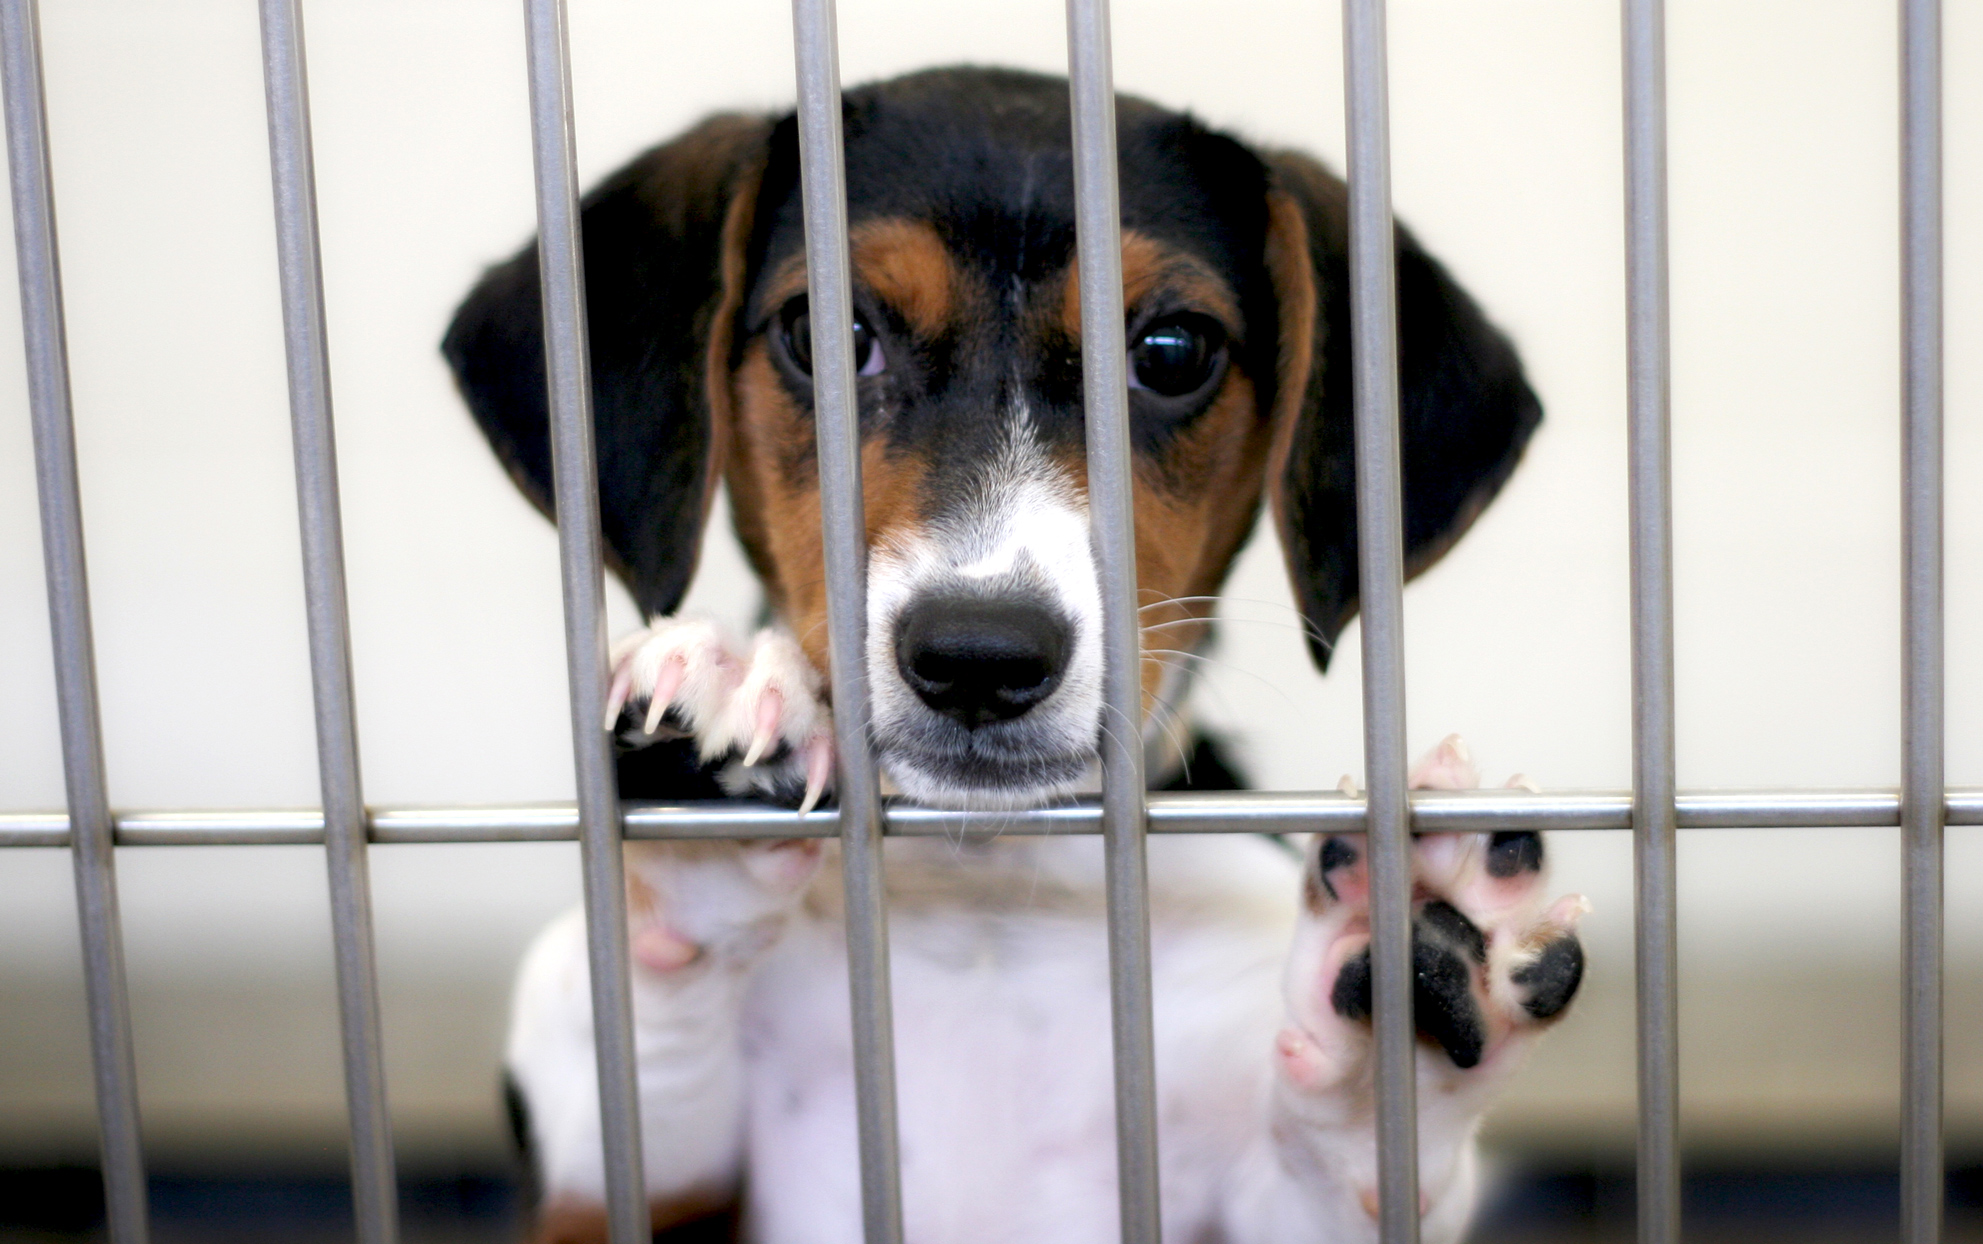 Puppy looking out from it's cage in a dog shelter